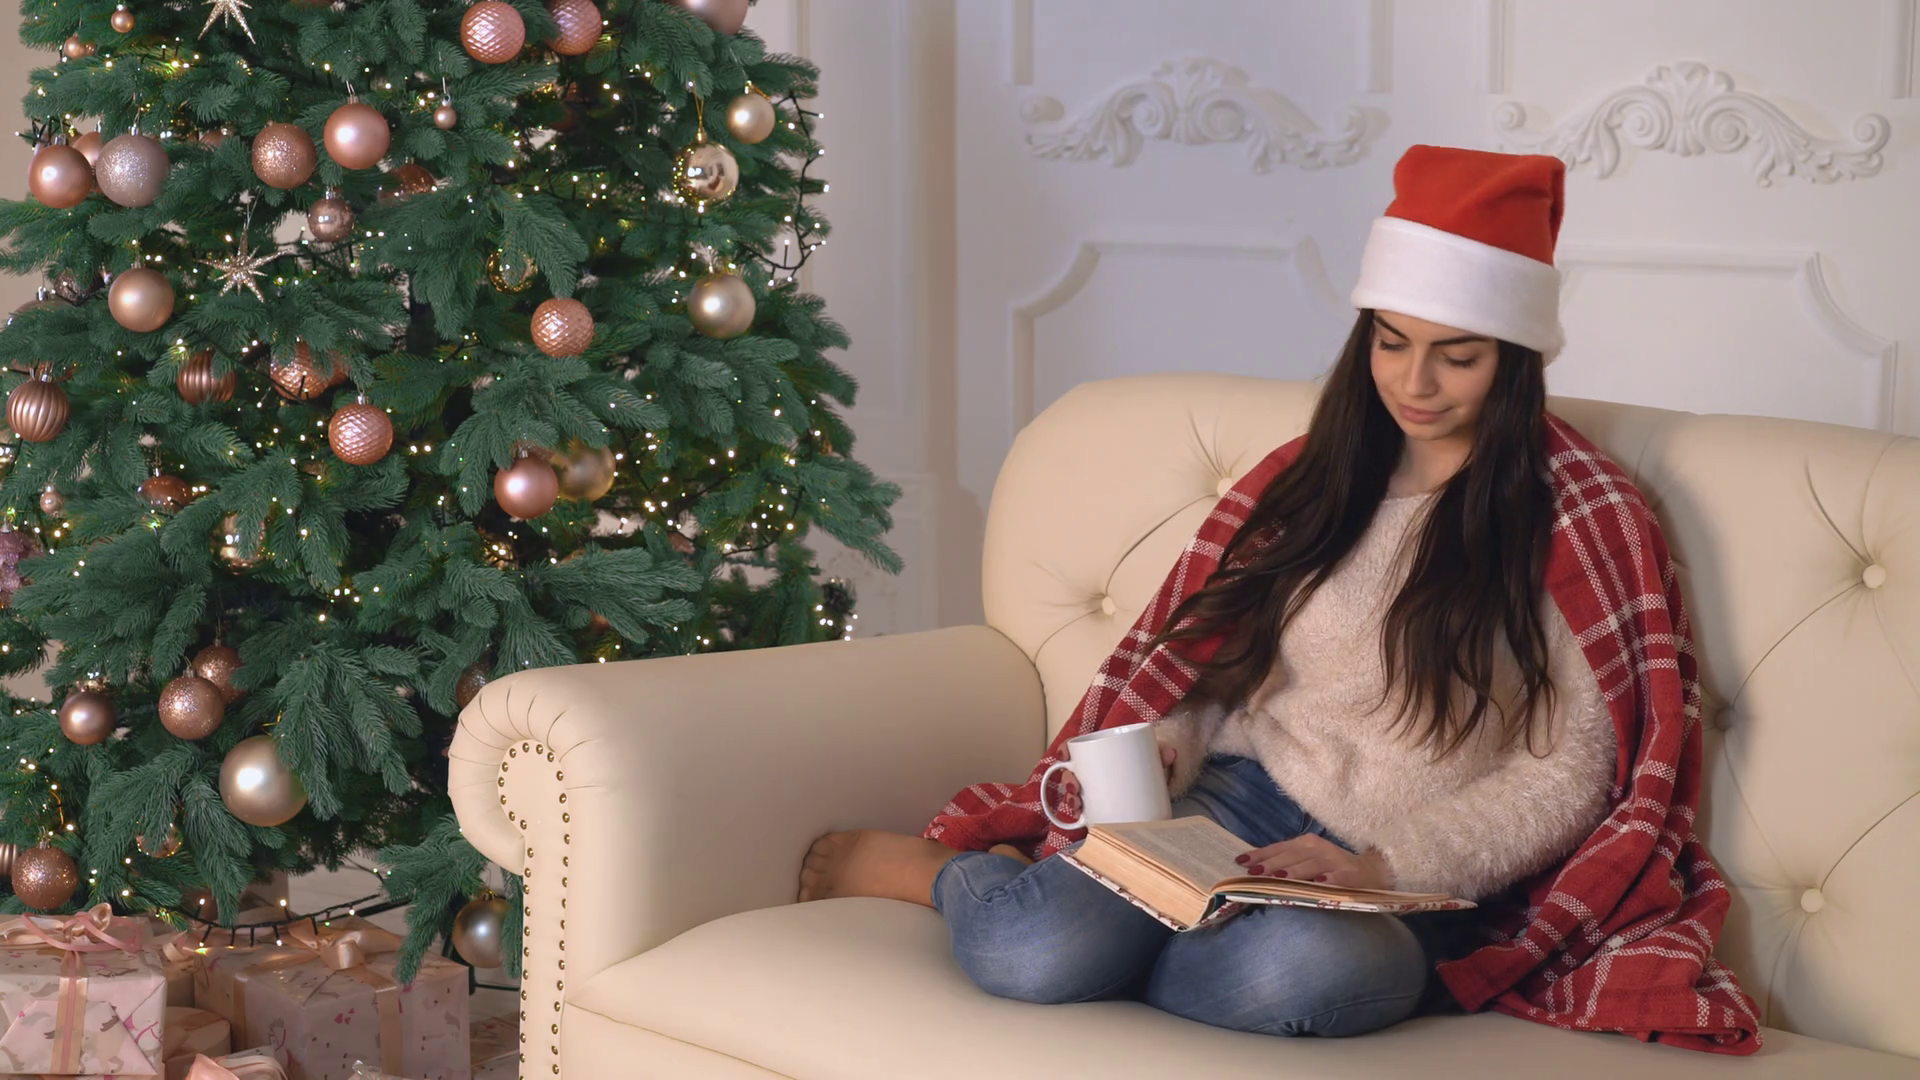 Home alone hot women Young Woman Sitting On The Sofa Reading Book And Drinking Hot Cocoa Beautiful Young Girl Resting Alone At Home Wonderful Christmas Tree In Apartment Caucasian Model Wearing In Casual Sweater And Stock